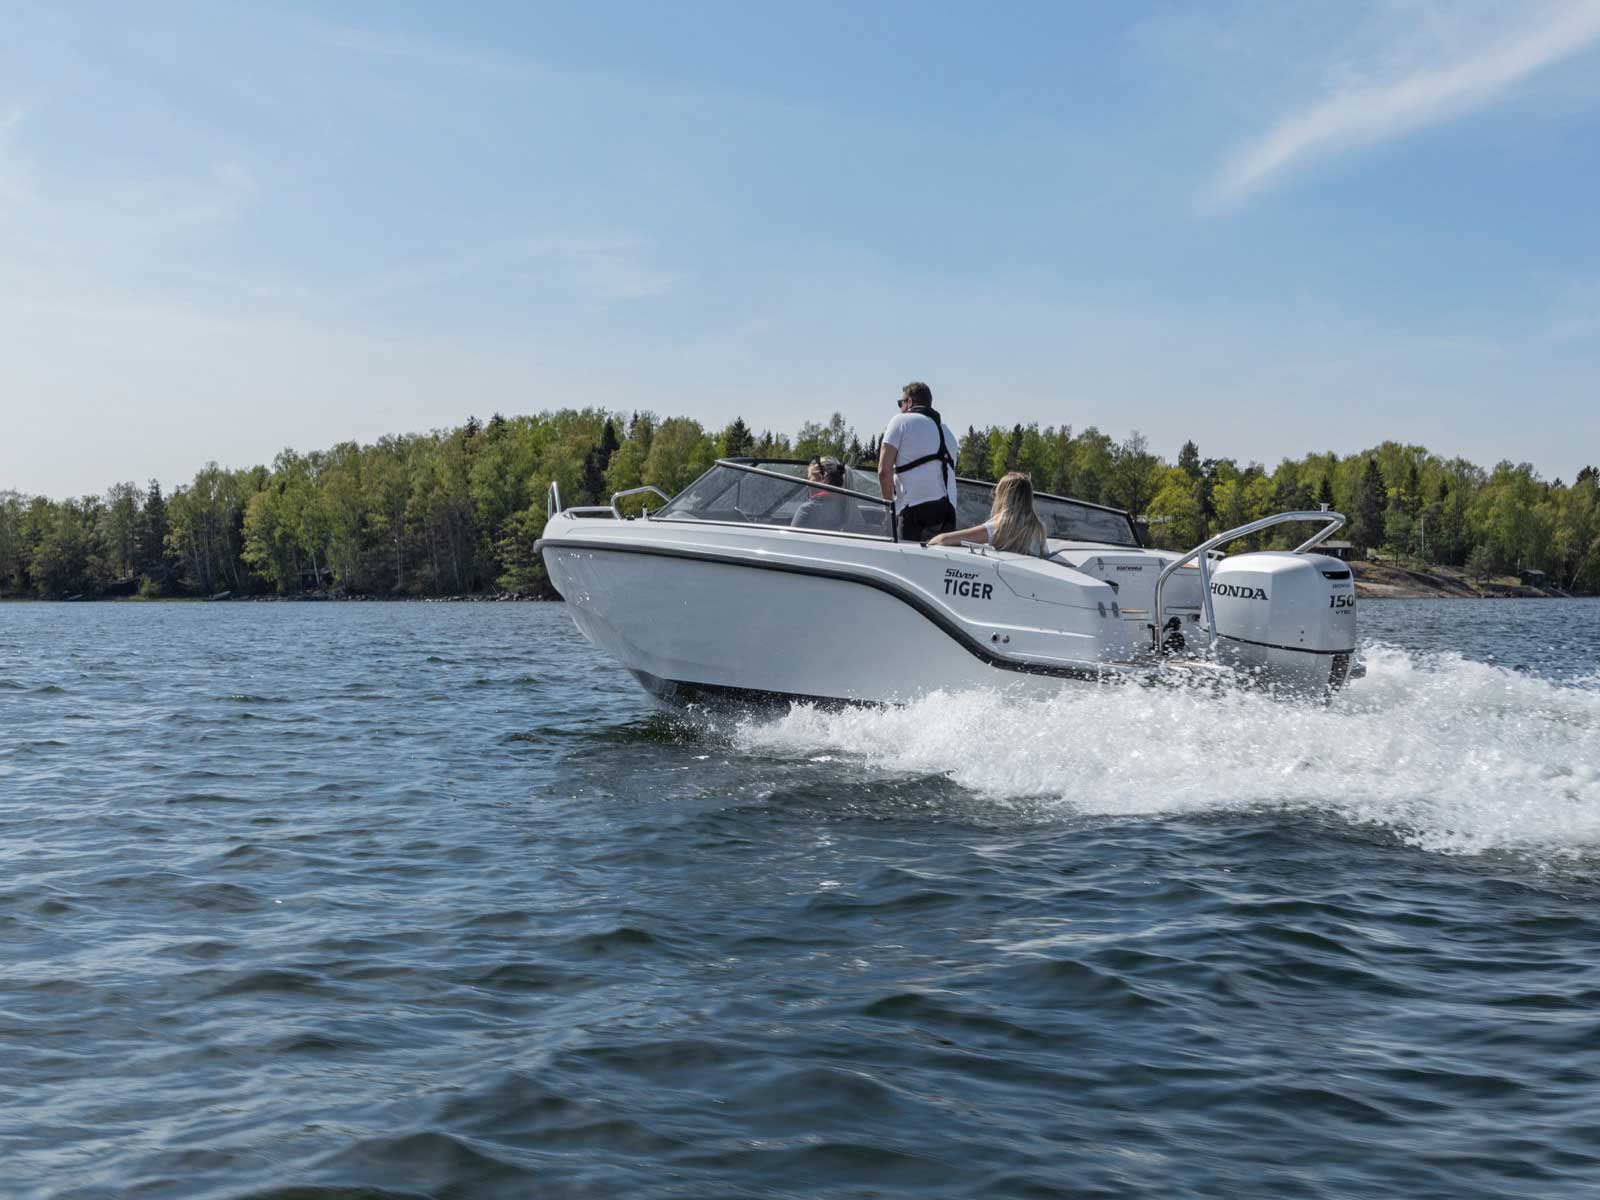 Silver Tiger BRz | Boat Solutions, Utting am Ammersee